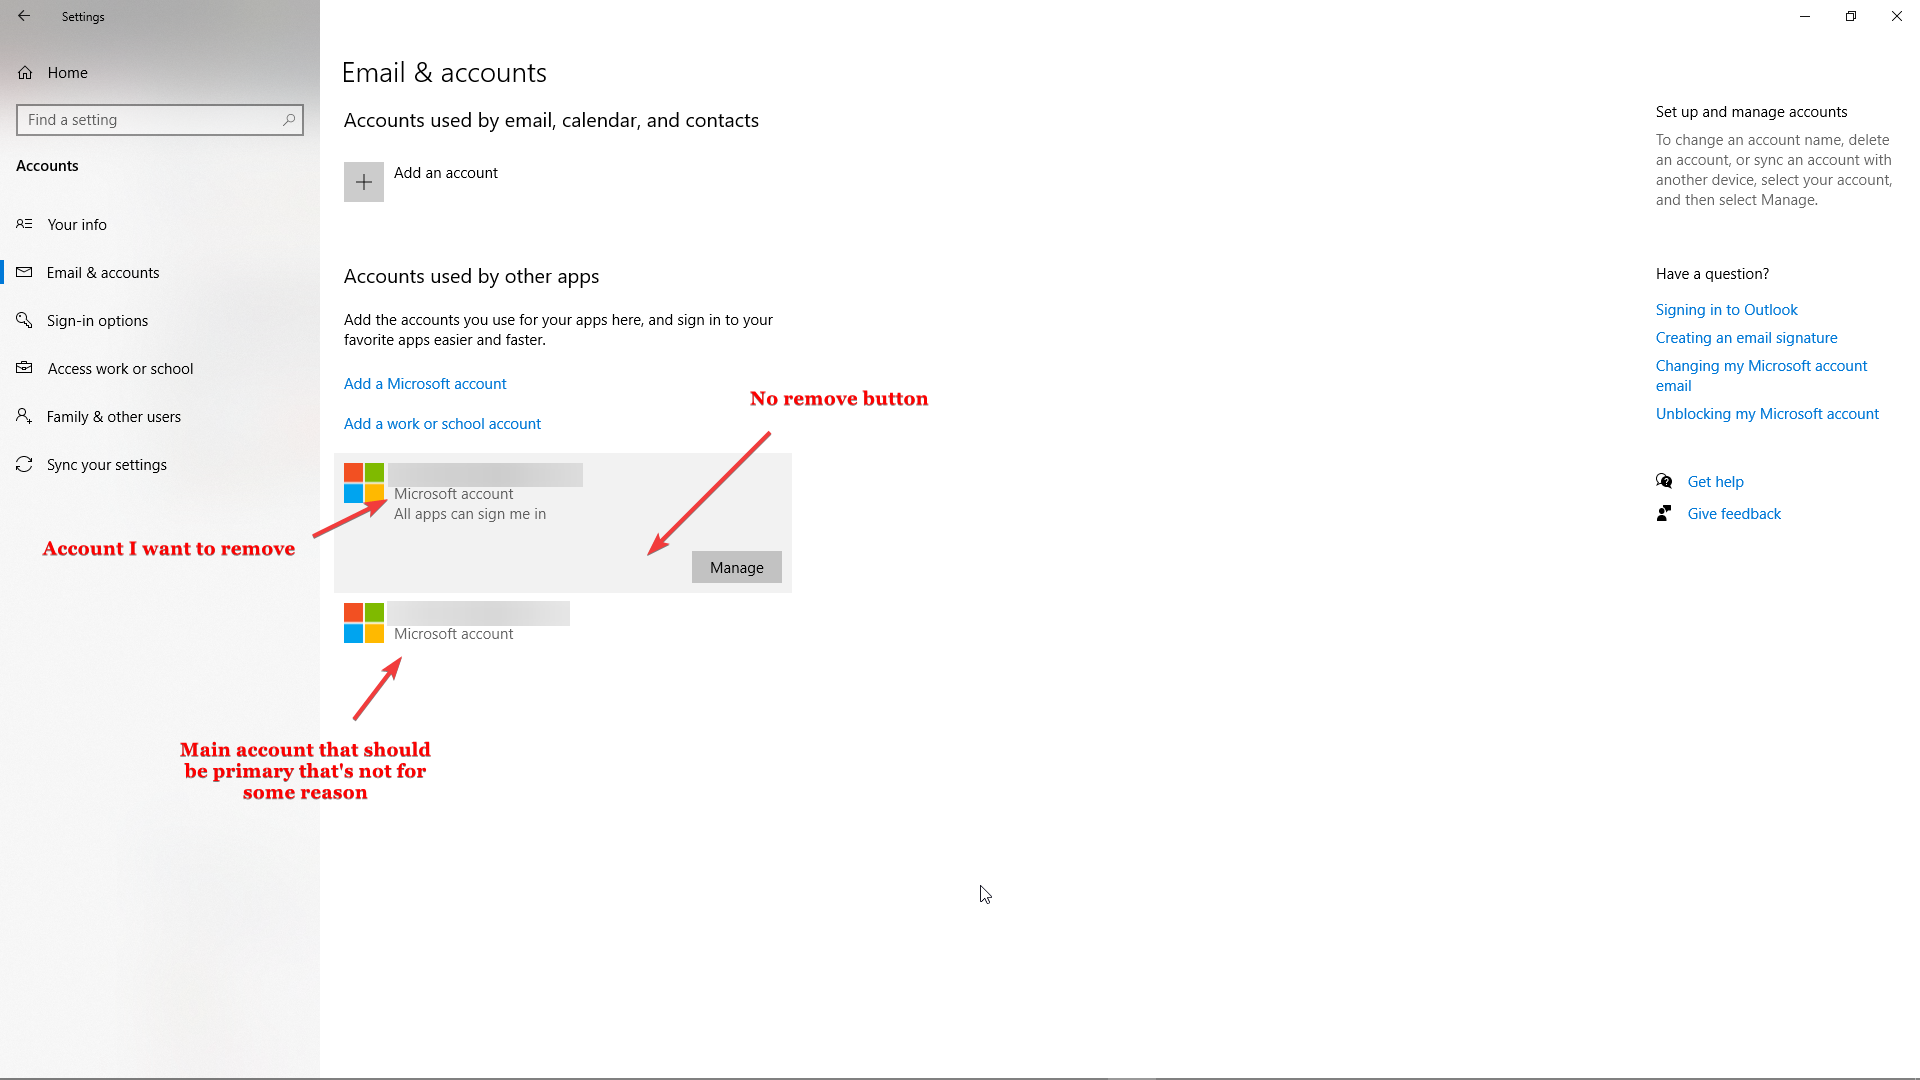 an email adress I had that doesn't exist anymore was added to my PC and now I can't remove it 479a103c-bda9-47f8-86ab-d699b484f192?upload=true.png